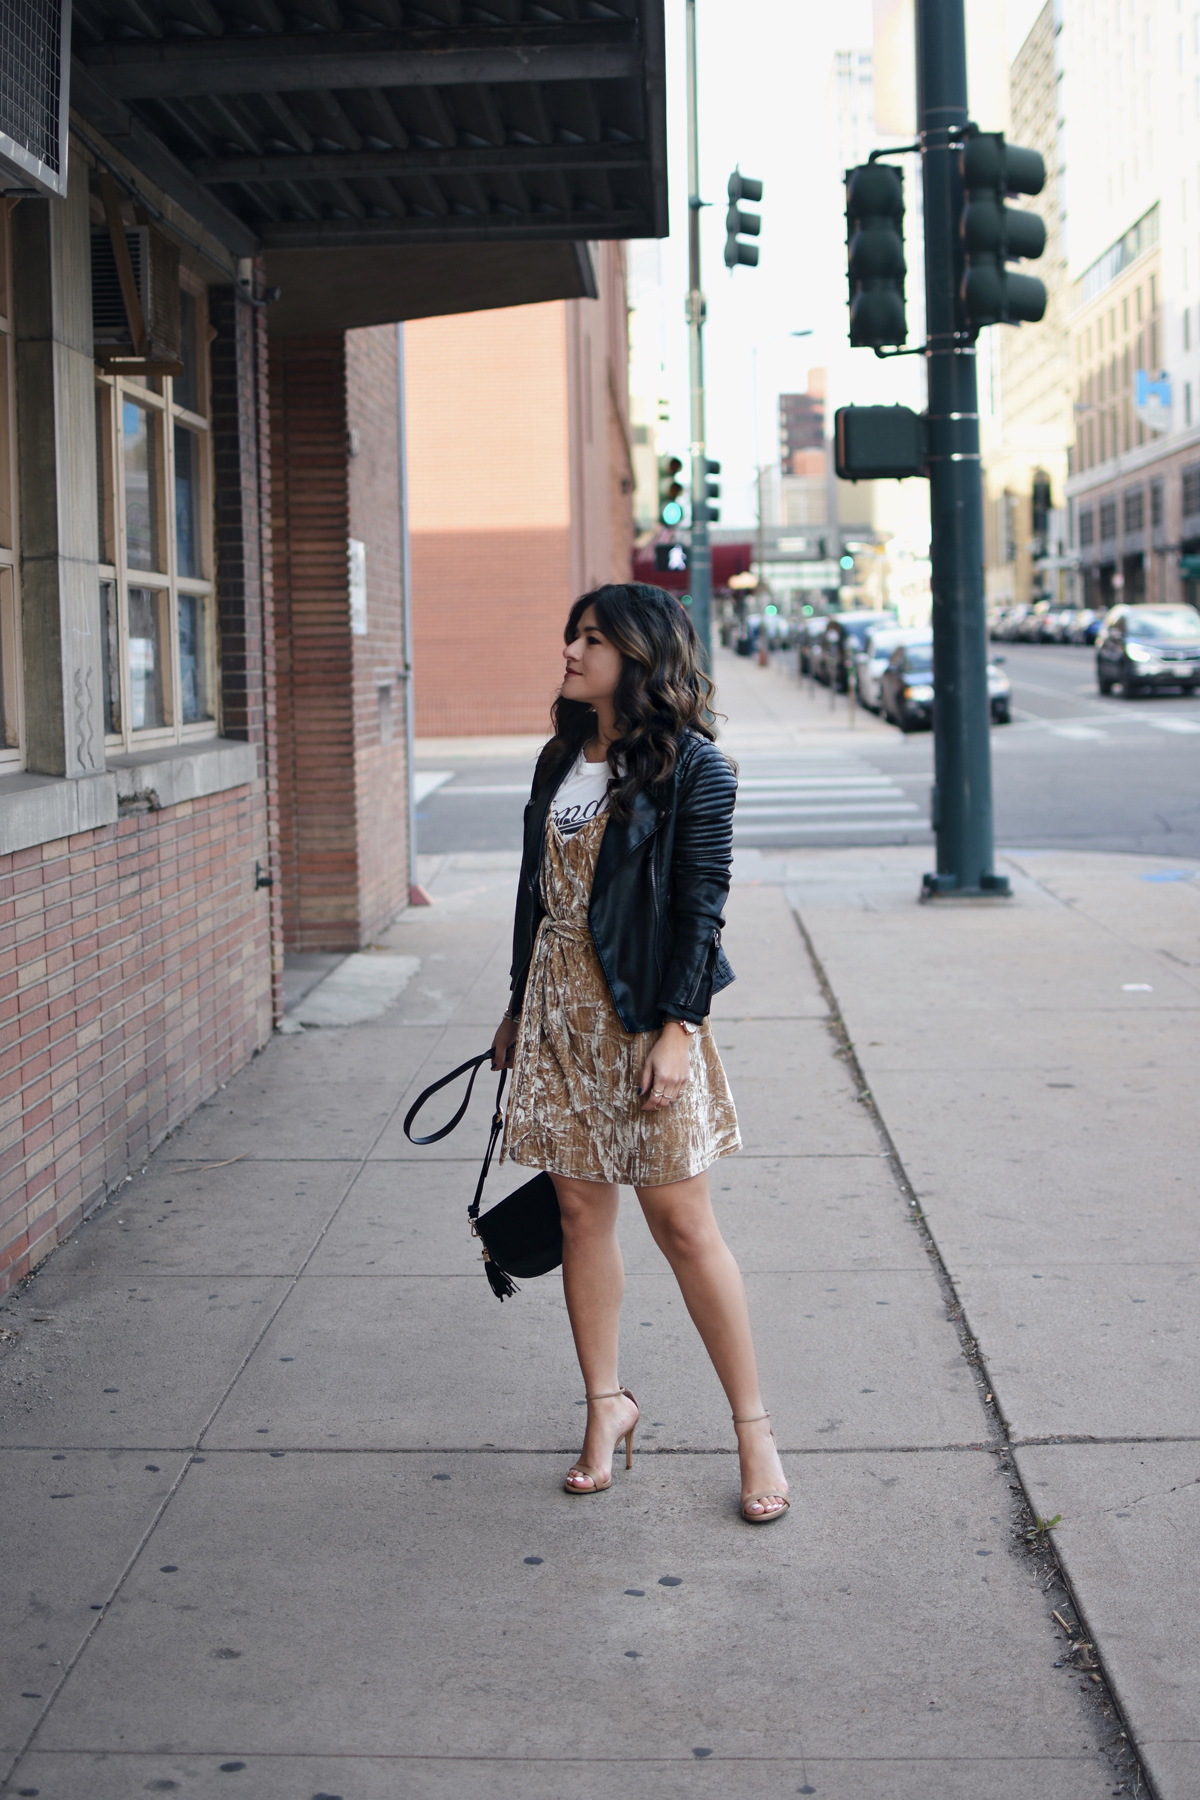 Carolina Hellal of Chic Talk wearing a crushed velvet dress via Shein, Topshop fauc leather jacket, Blondie t-shirt, Steve Madden sandals, and Rebecca Minkoff crossbody bag